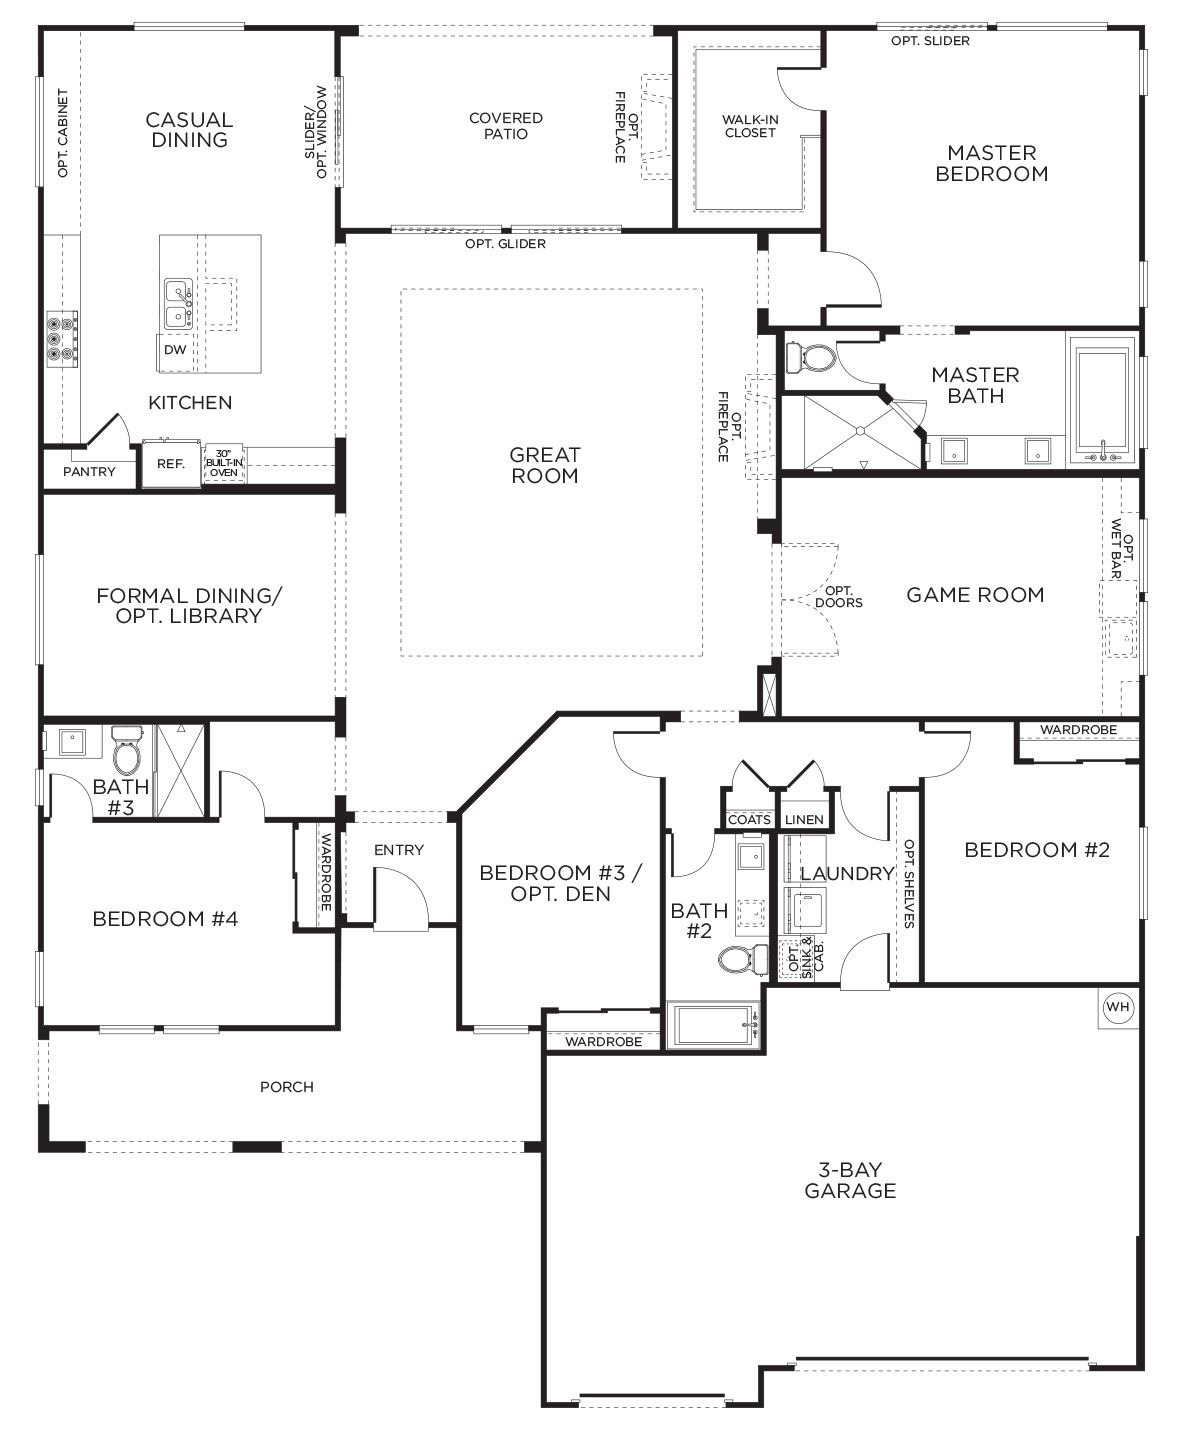 Single Story House Plans Beautiful Love This Layout with Extra Rooms Single Story Floor Plans